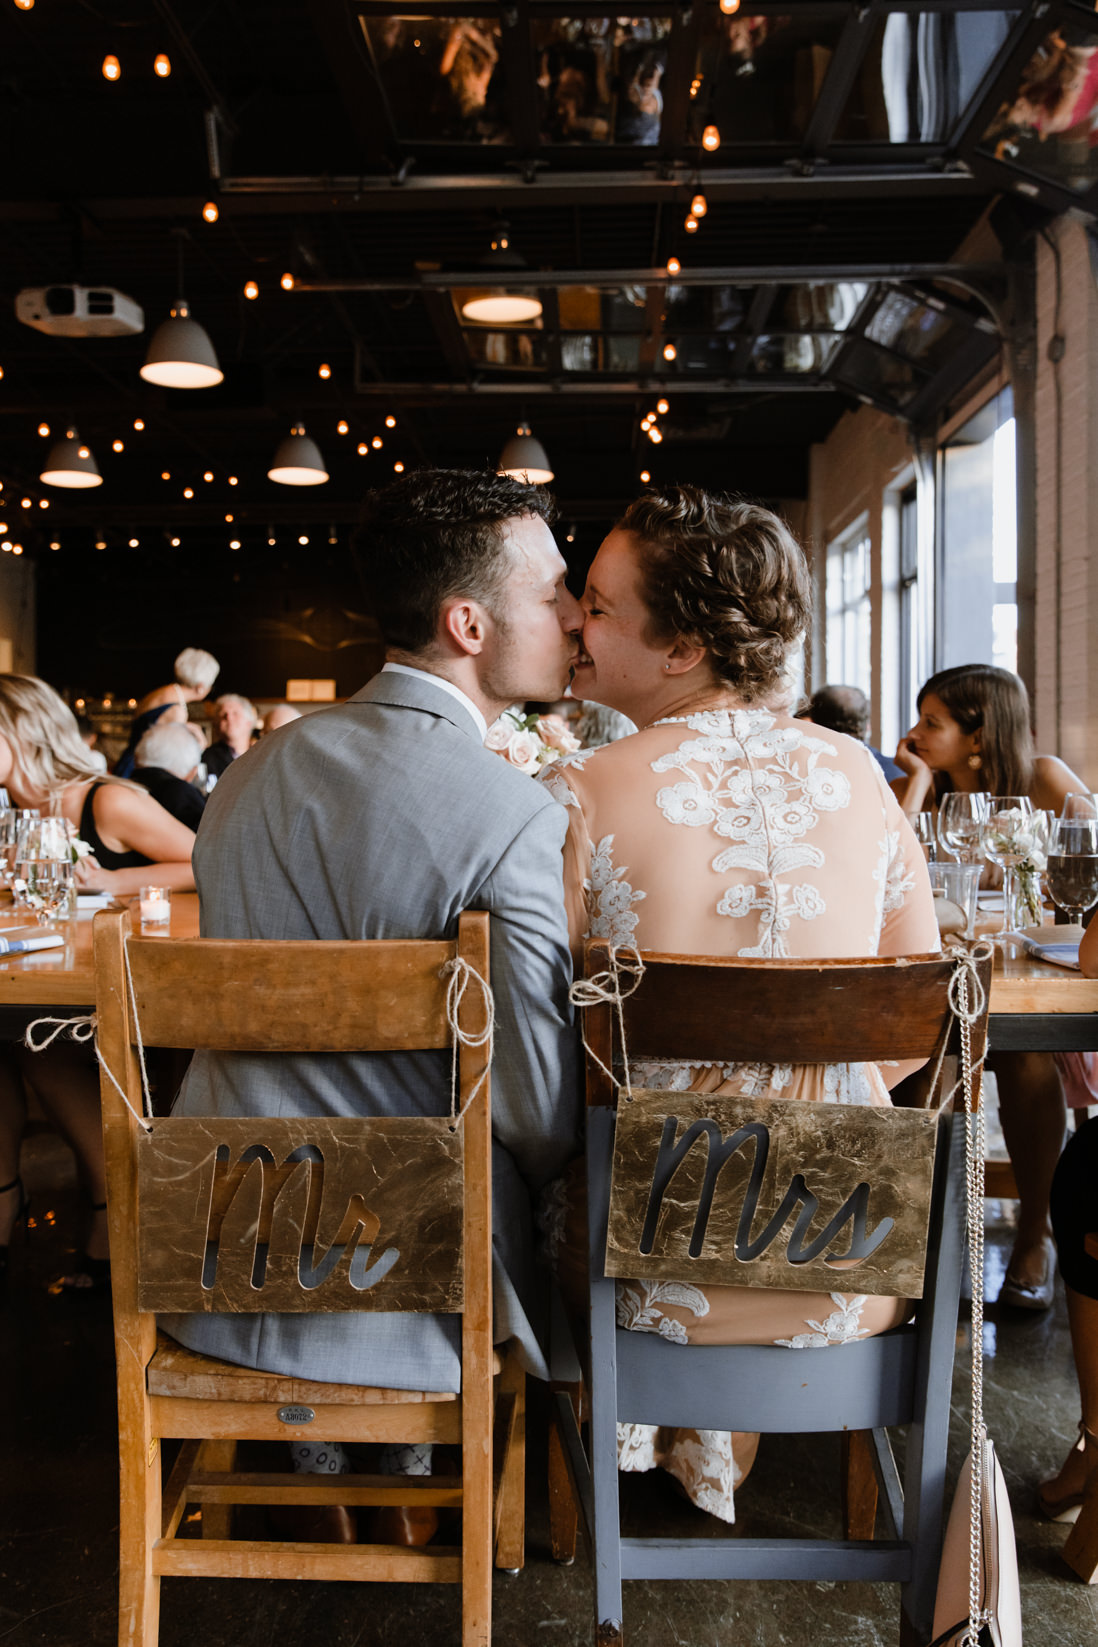 bride and groom kissing at wedding reception Propeller Coffee Co Toronto_EightyFifth Street Photography